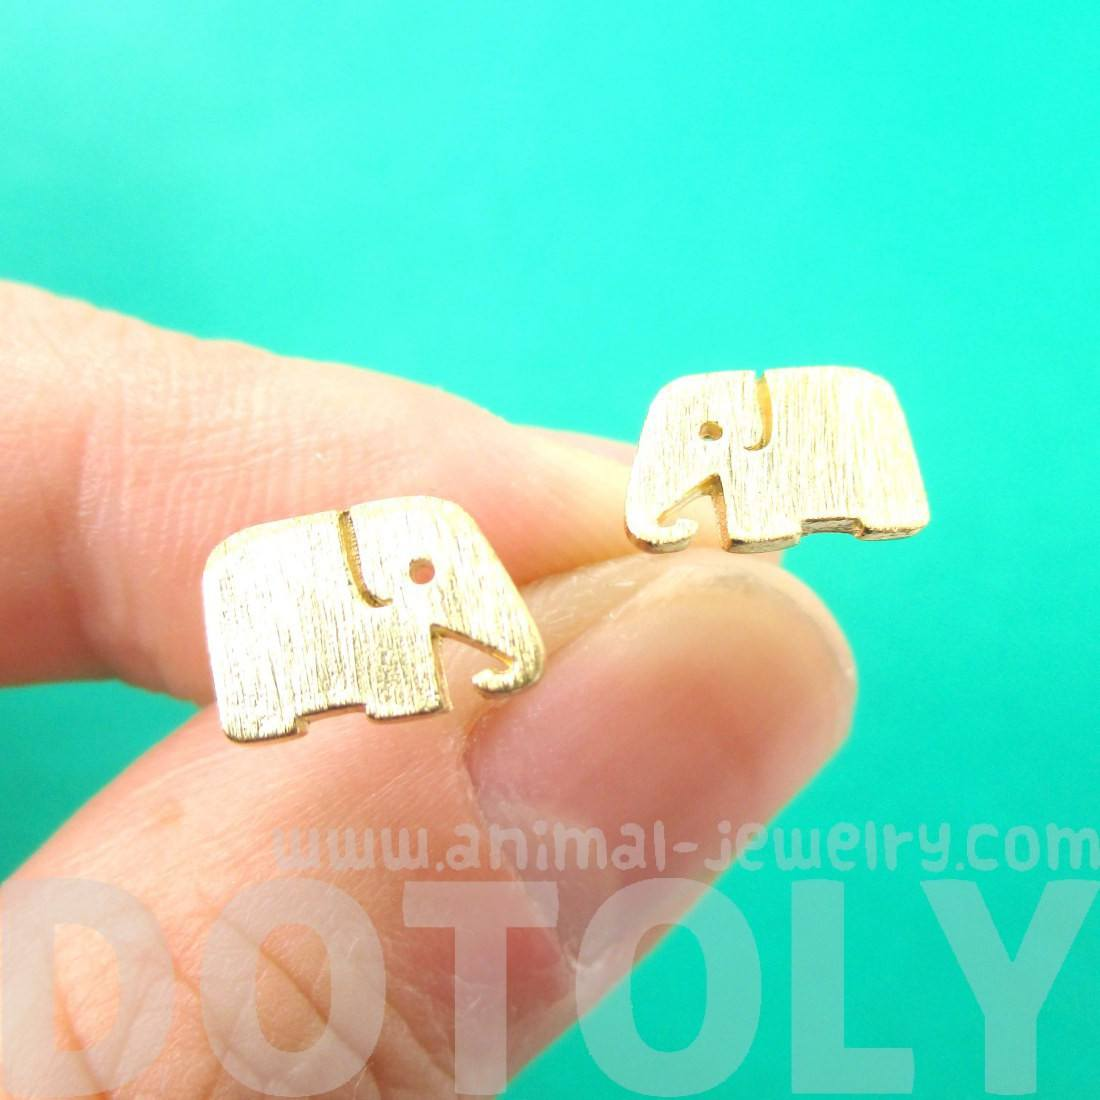 Simple Elephant Silhouette Shaped Stud Earrings in Gold | Allergy Free